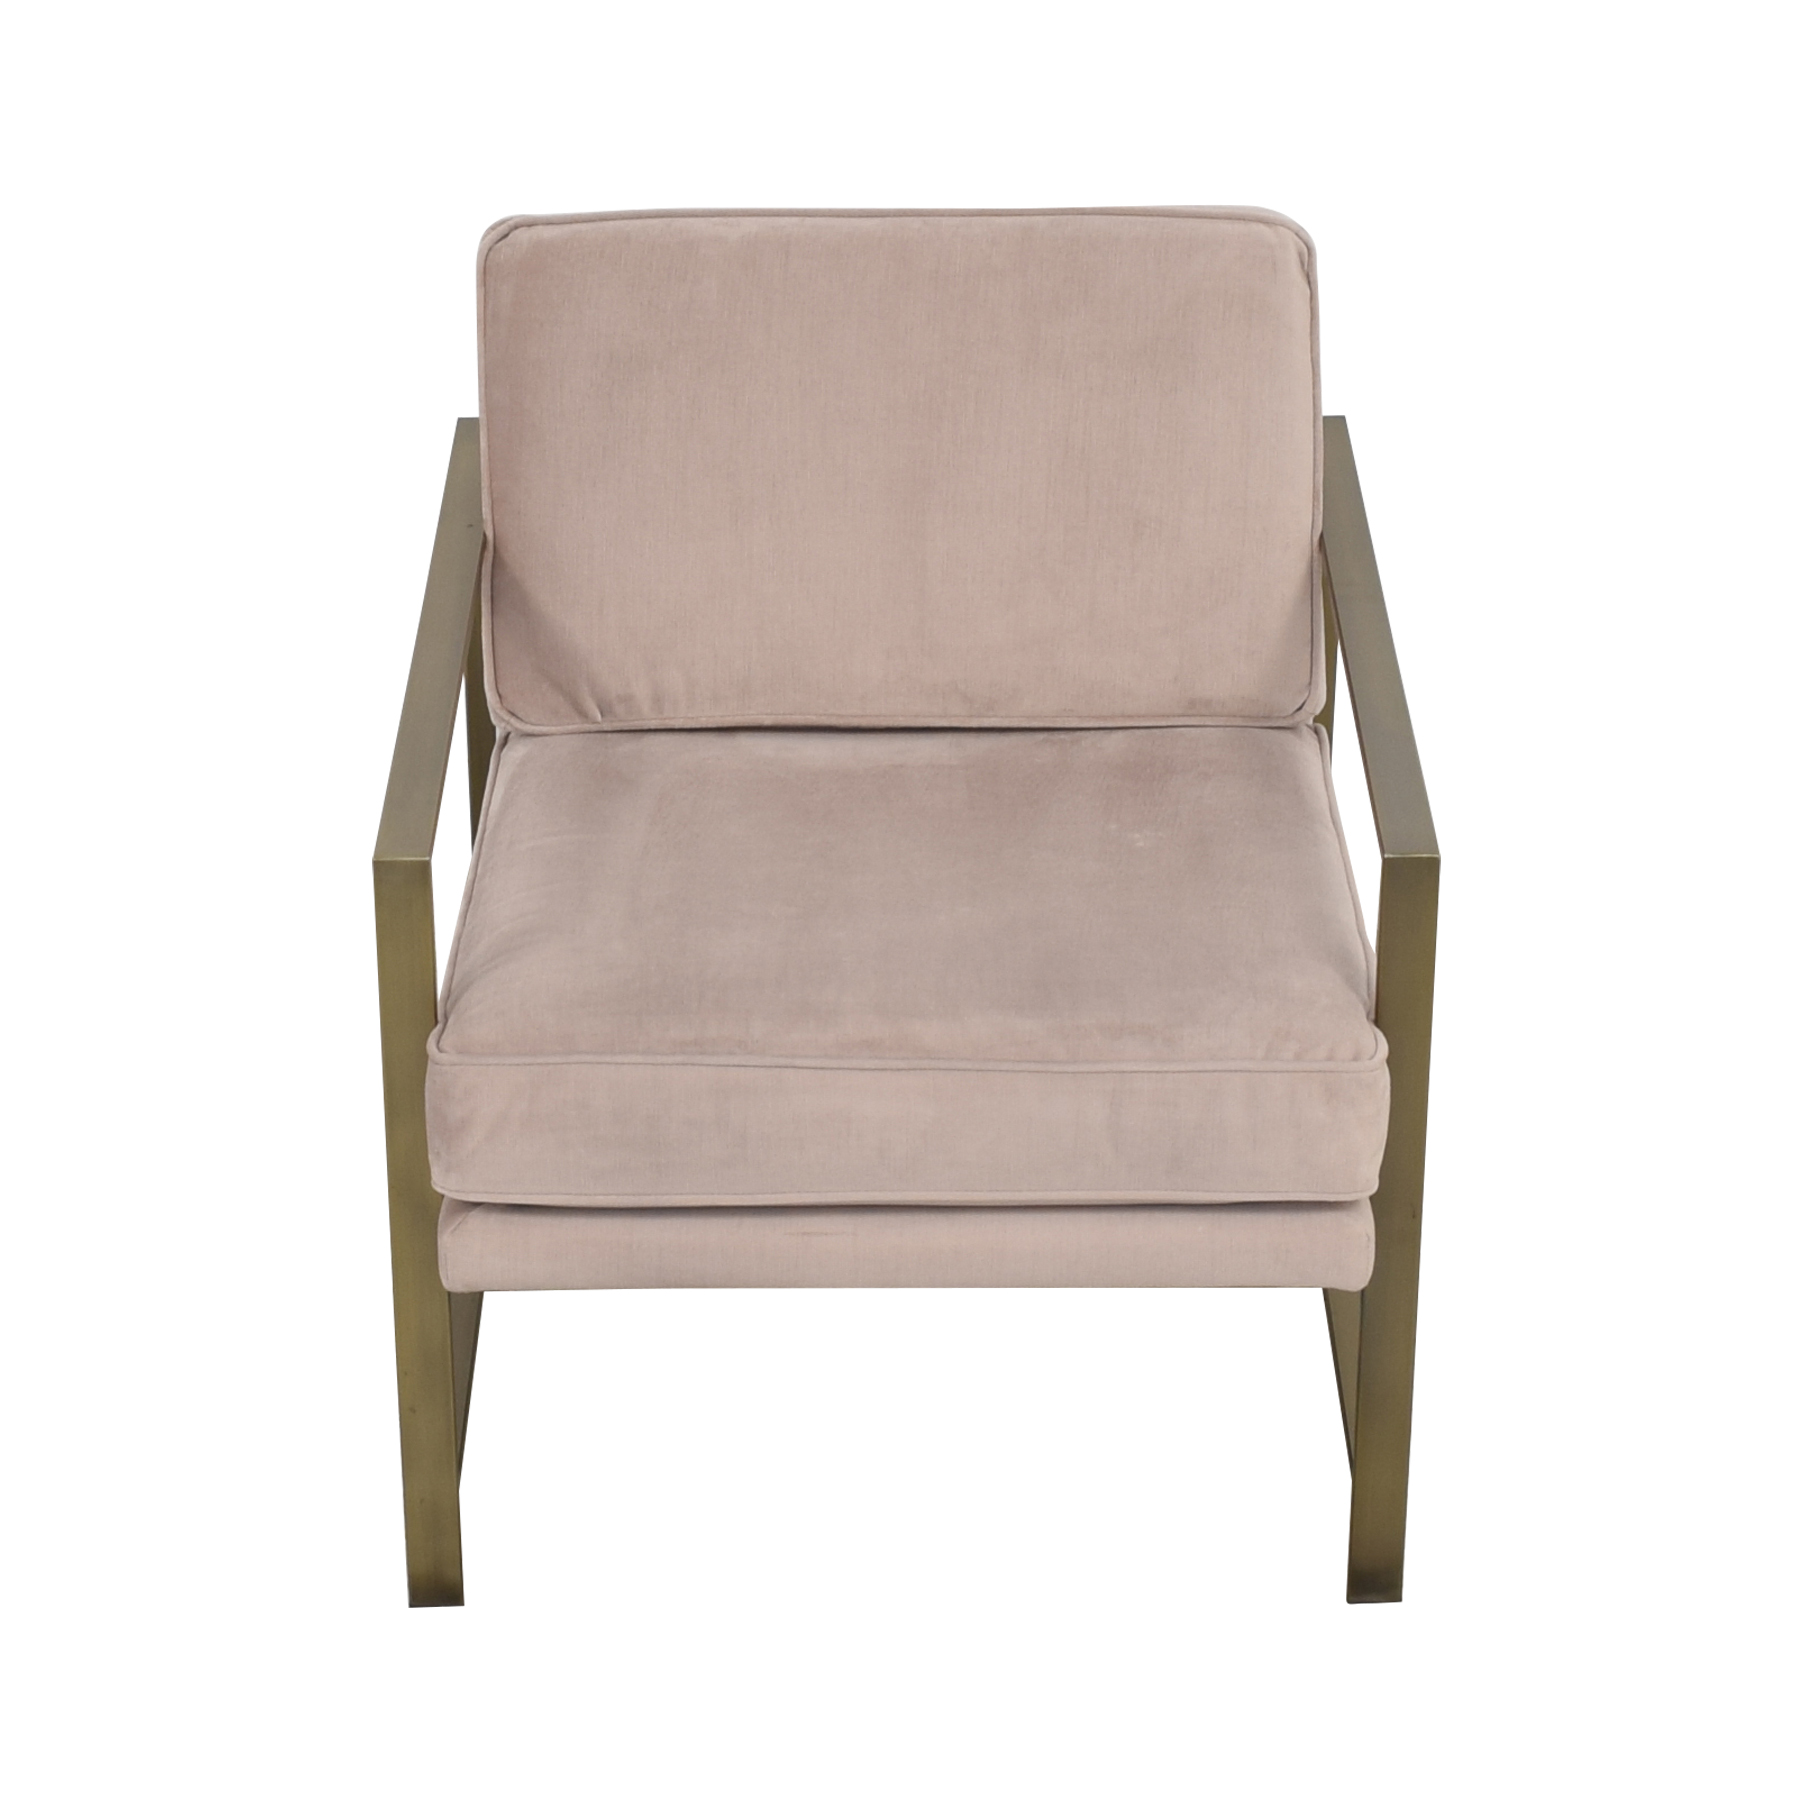 West Elm West Elm Metal Frame Upholstered Chair on sale